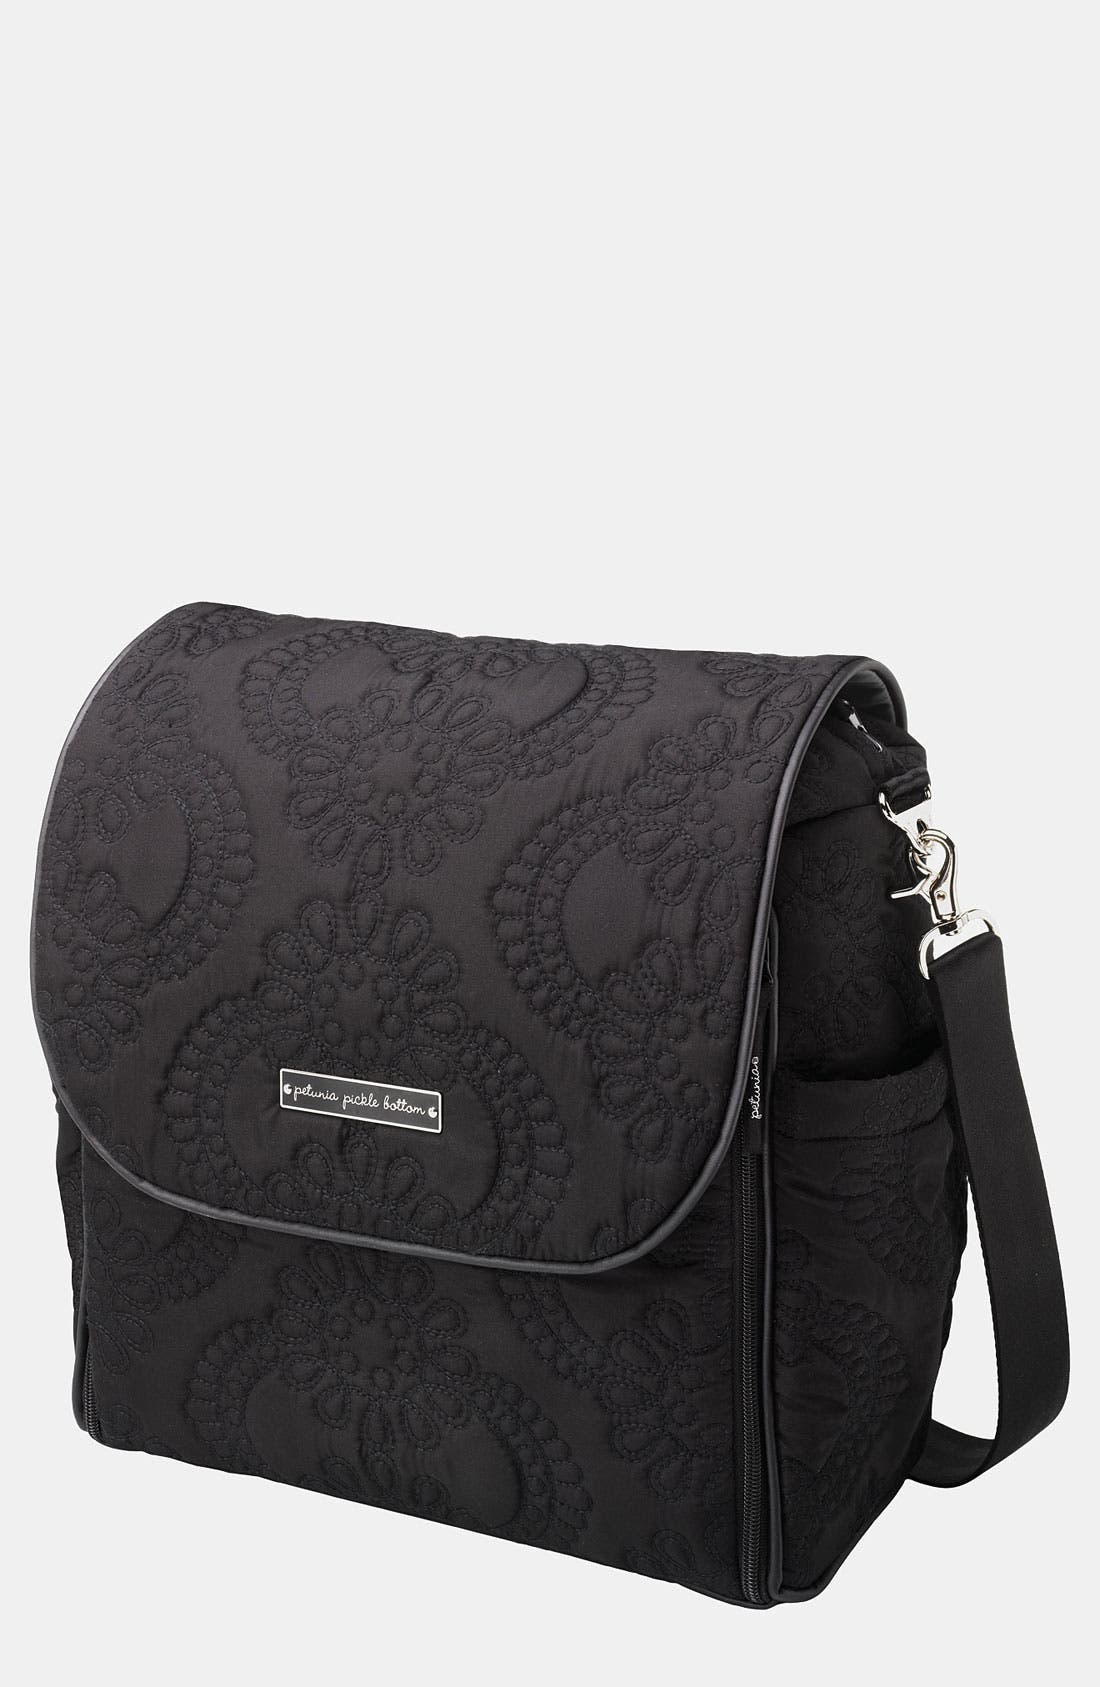 Alternate Image 1 Selected - Petunia Pickle Bottom 'Embossed Boxy' Magnetic Closure Backpack Diaper Bag